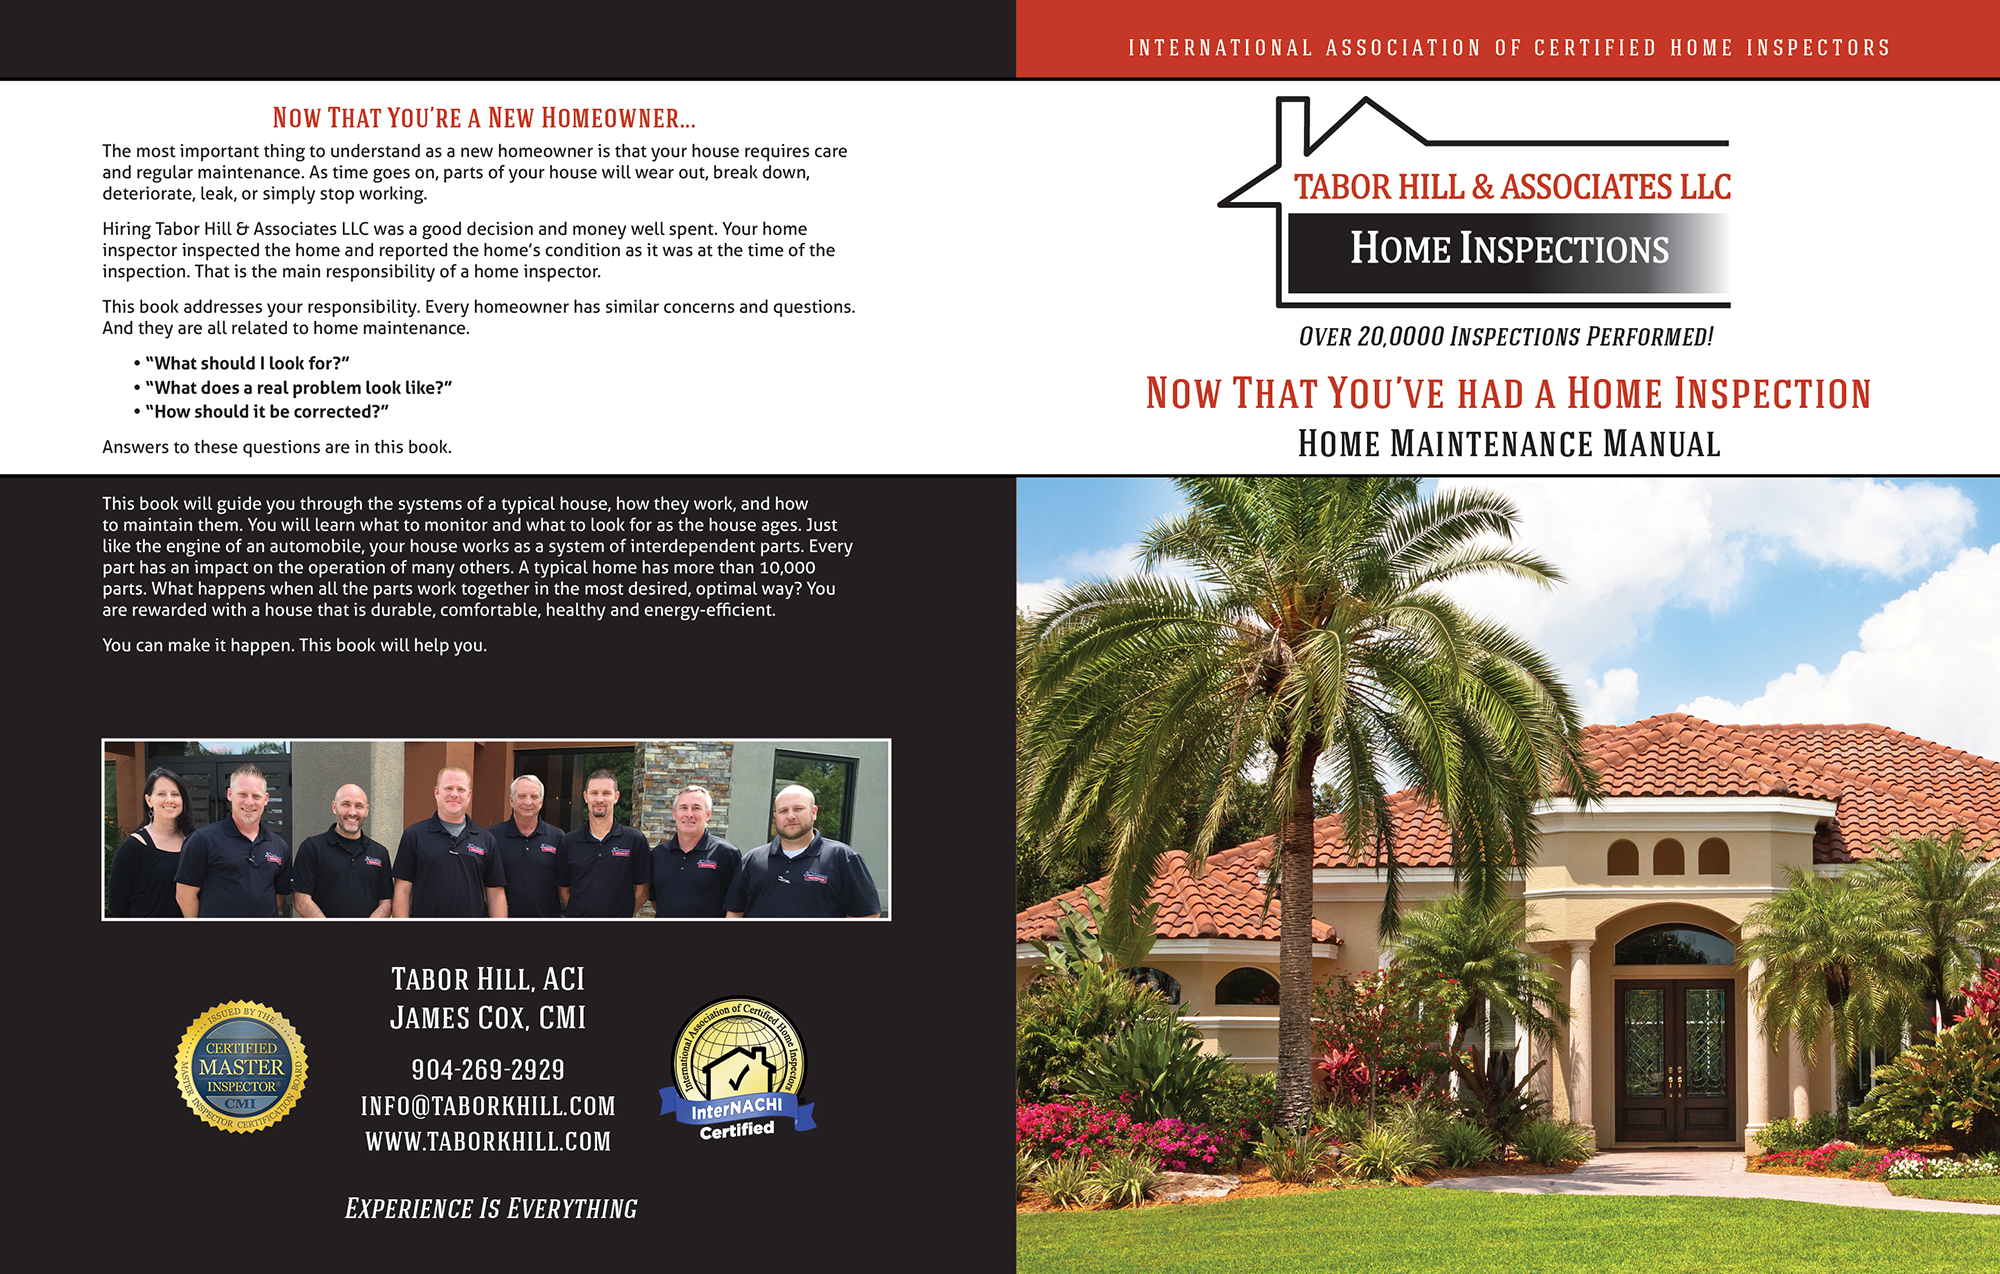 custom home maintenance book for tabor hill home inspections - inspection gallery